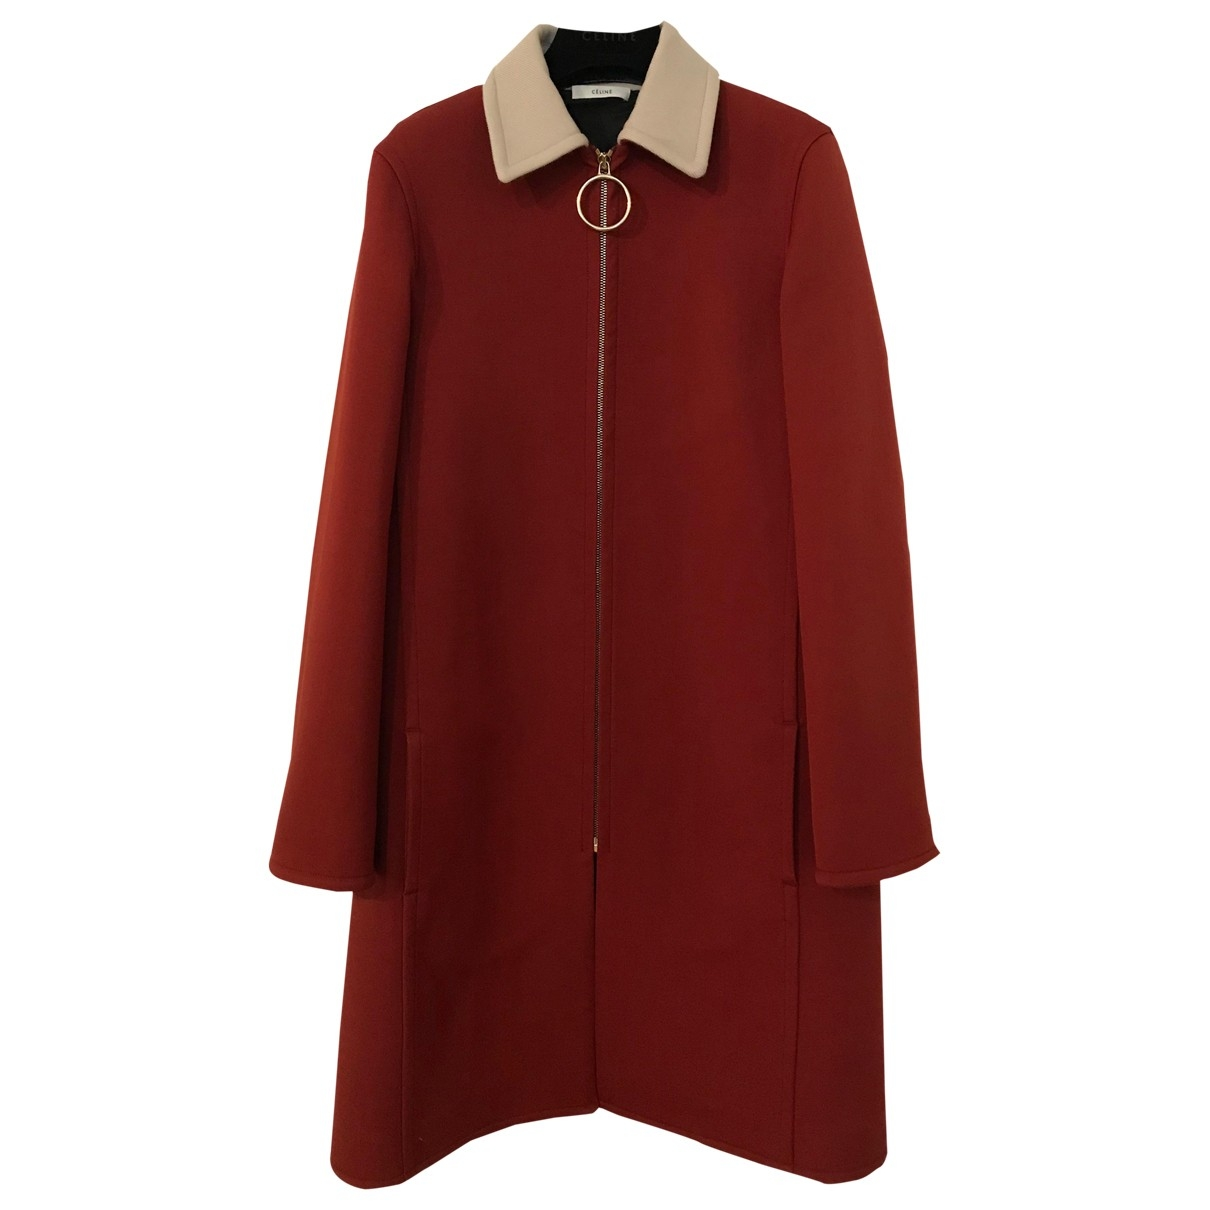 Celine \N Burgundy Wool coat for Women 36 FR